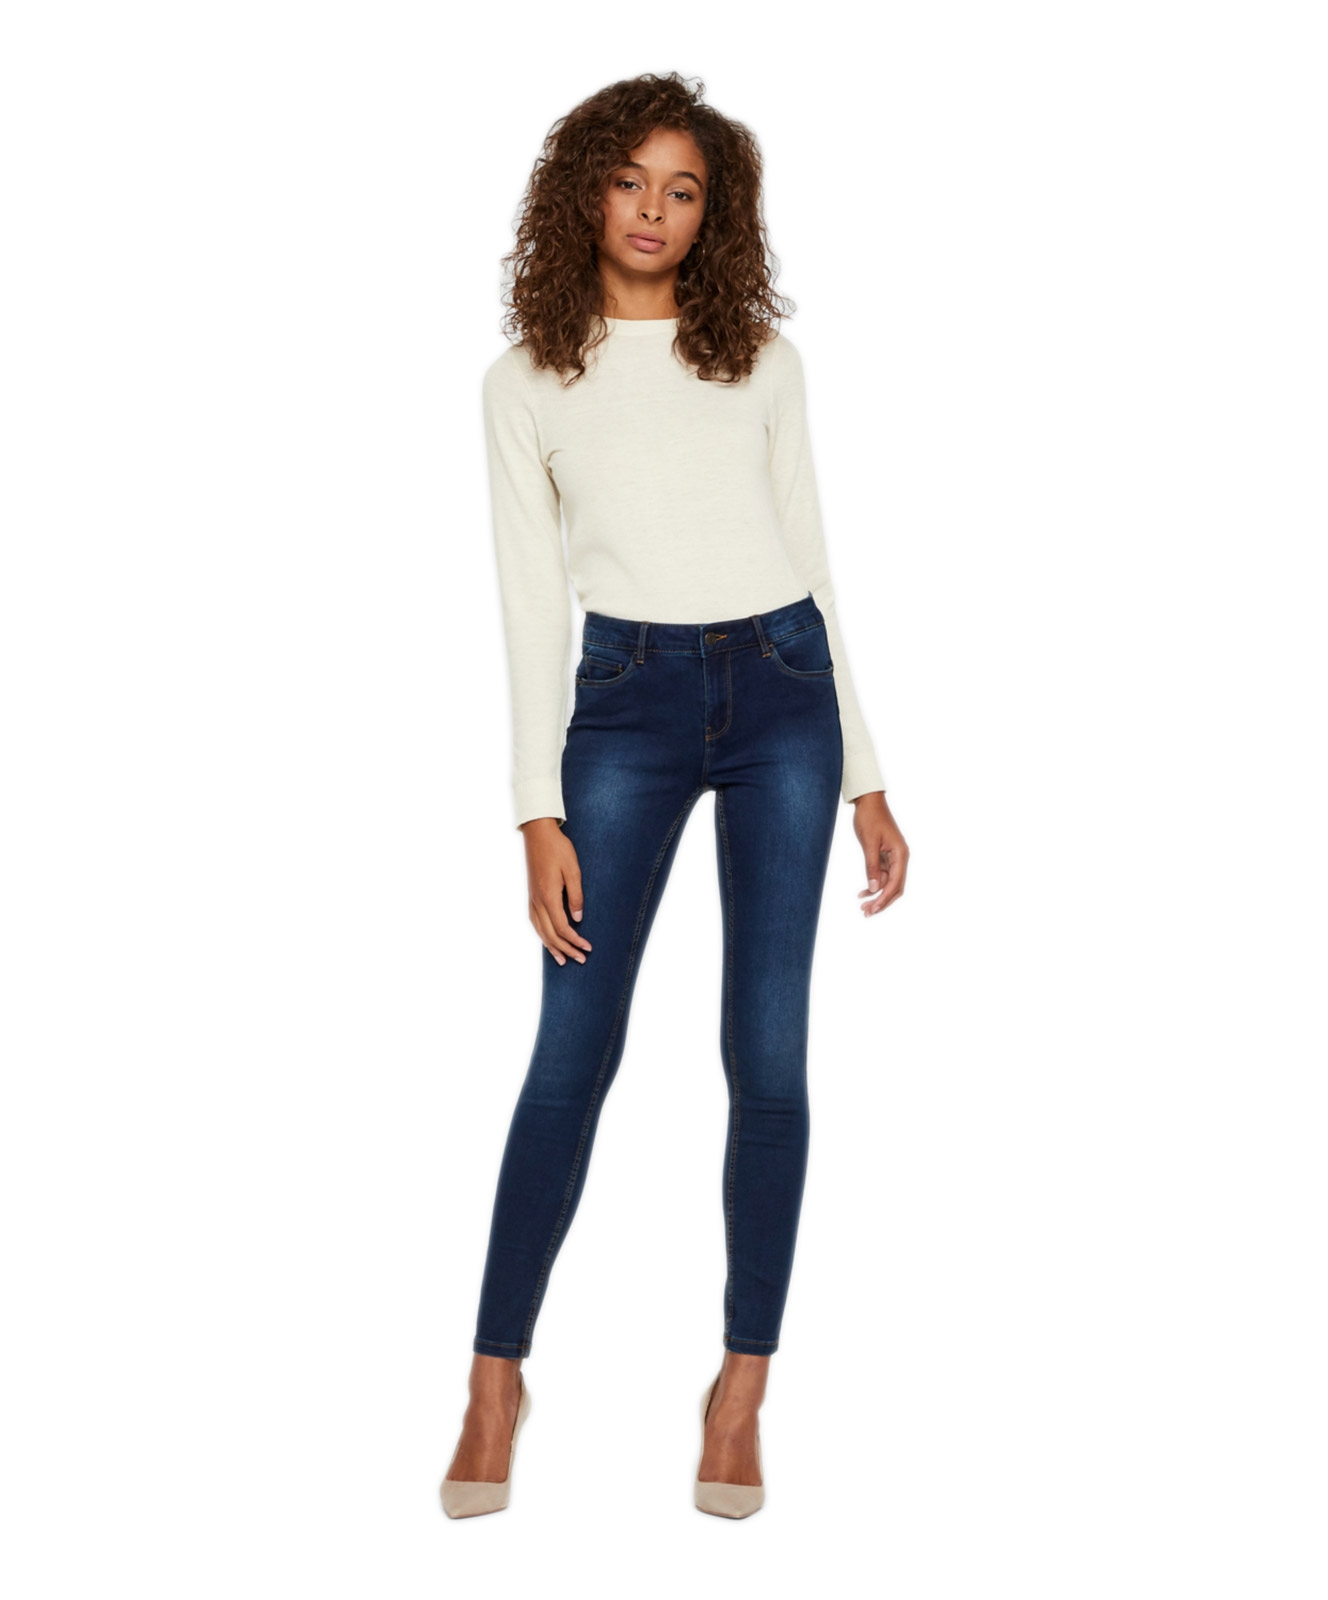 Hosen - Vero Moda Jeans Röhre Seven in Medium Blue Denim  - Onlineshop Jeans Meile